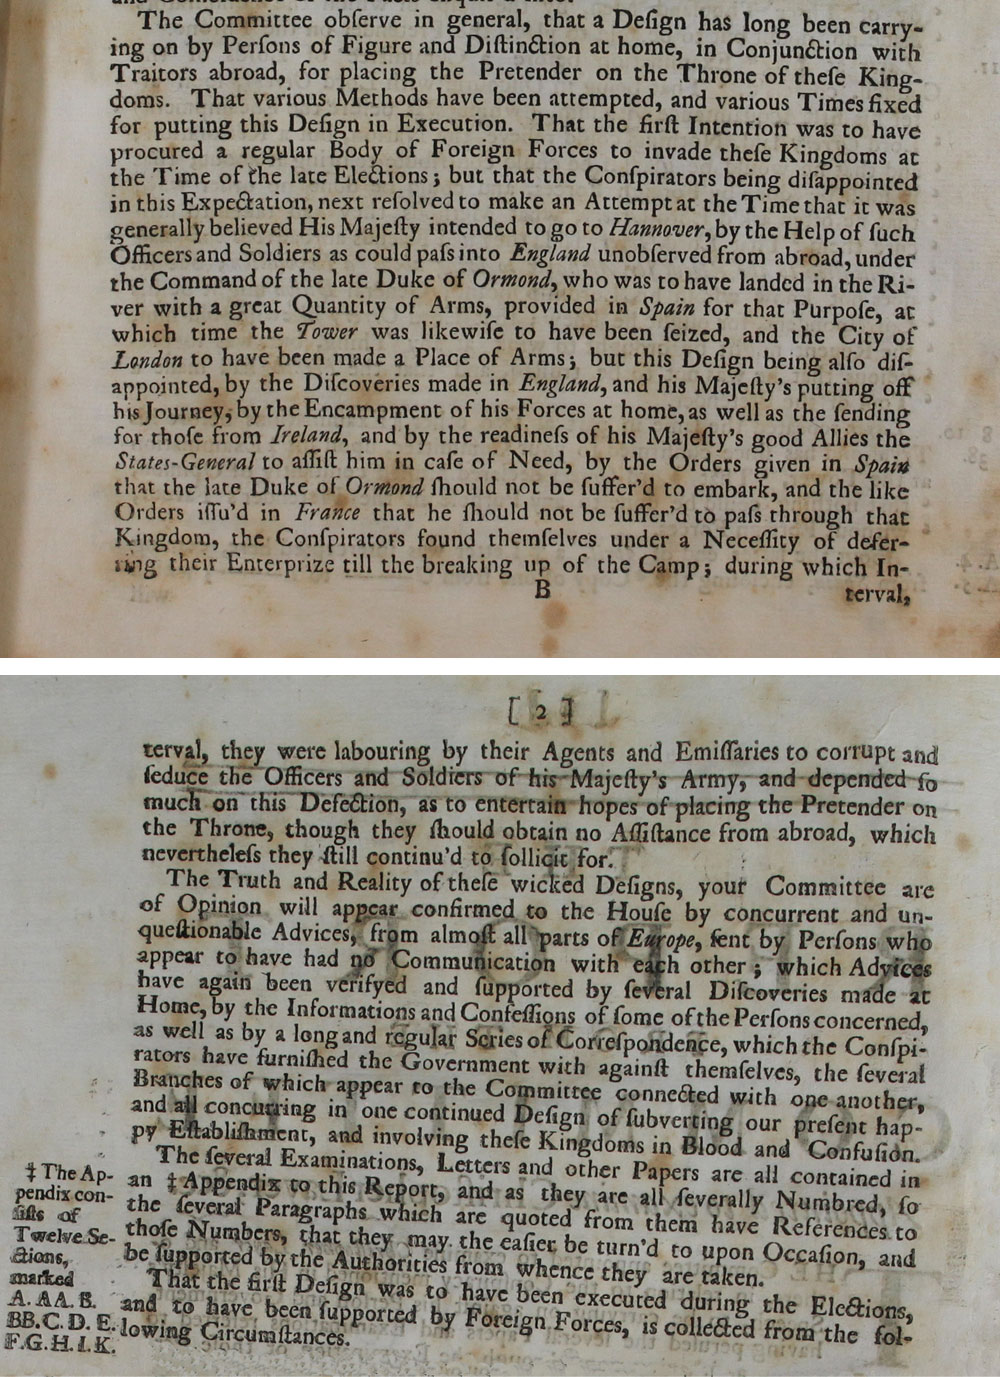 Extracts from a Government report on a Jacobite plot involving Christopher Layer, 5 March 1722 (T 64/306)